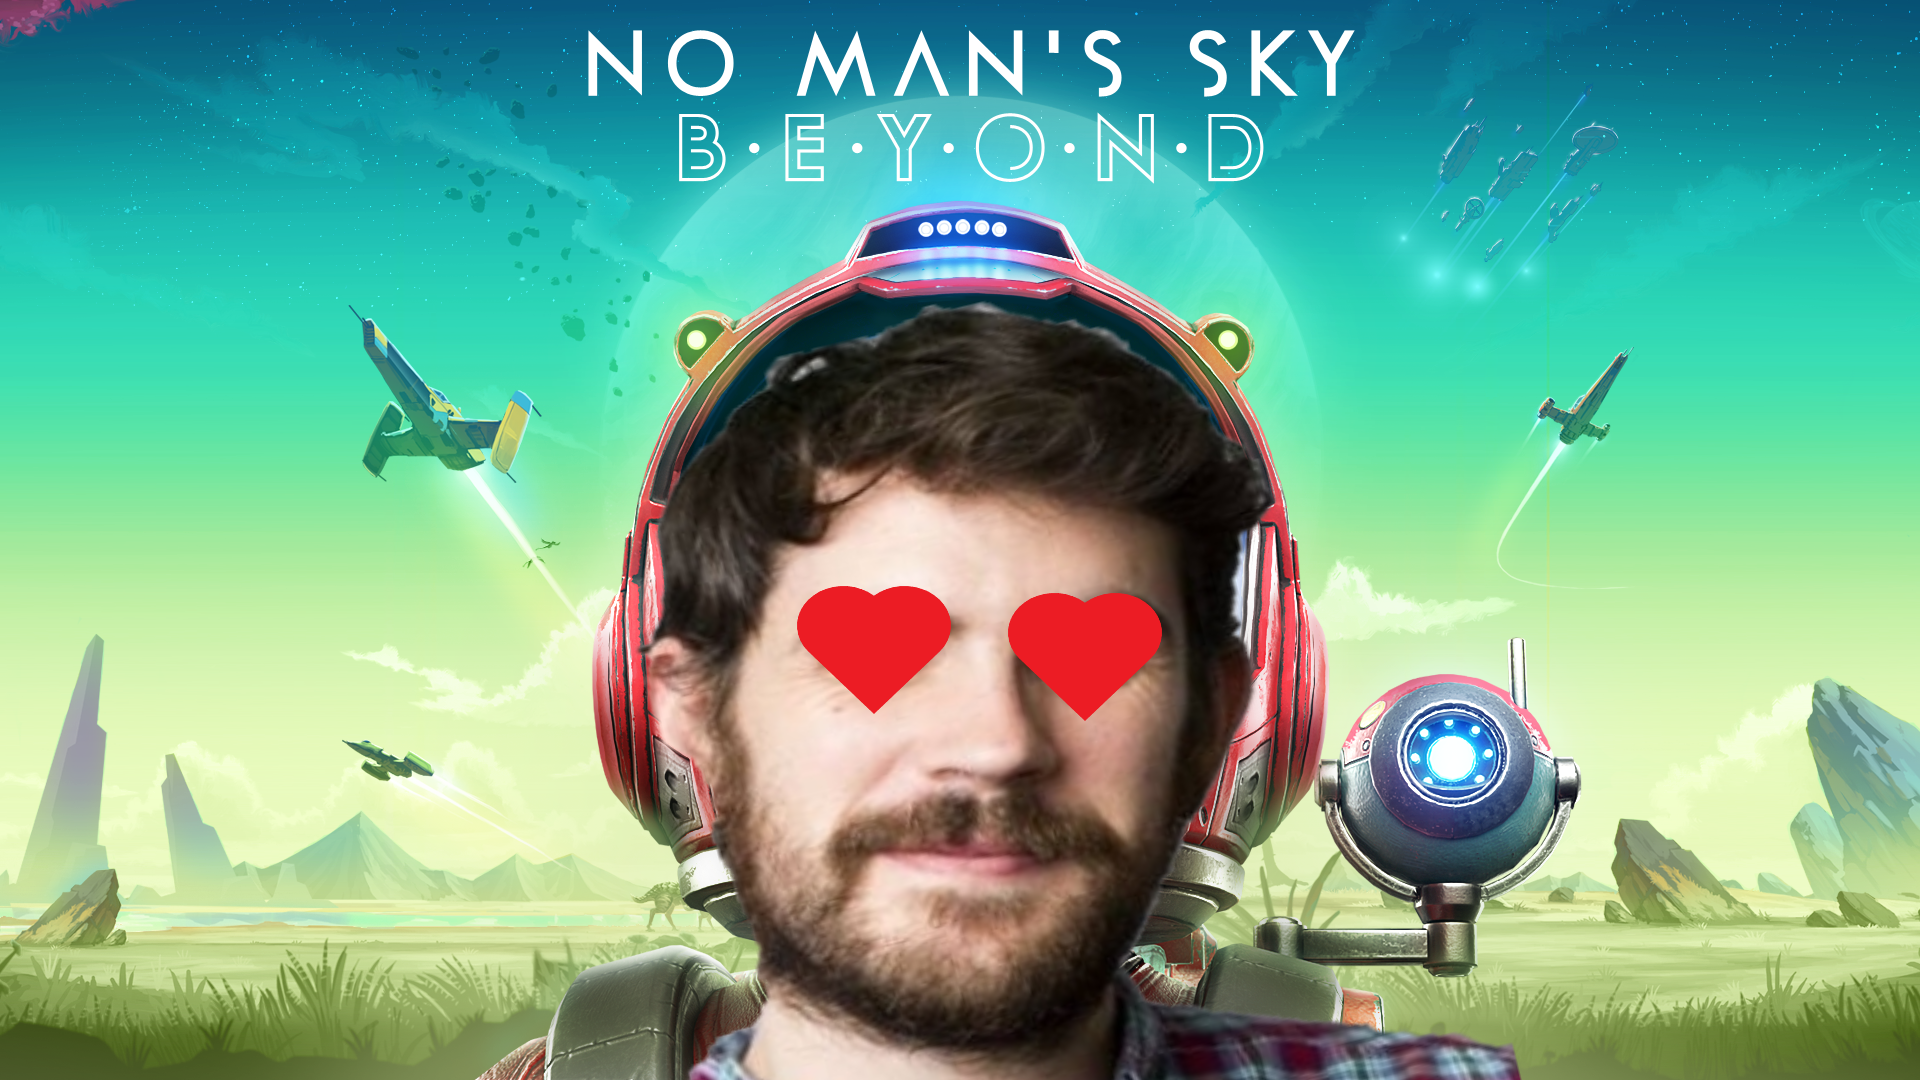 No Man S Sky Director Sean Murray Doesn T Want You To See His Erotic Fanfic